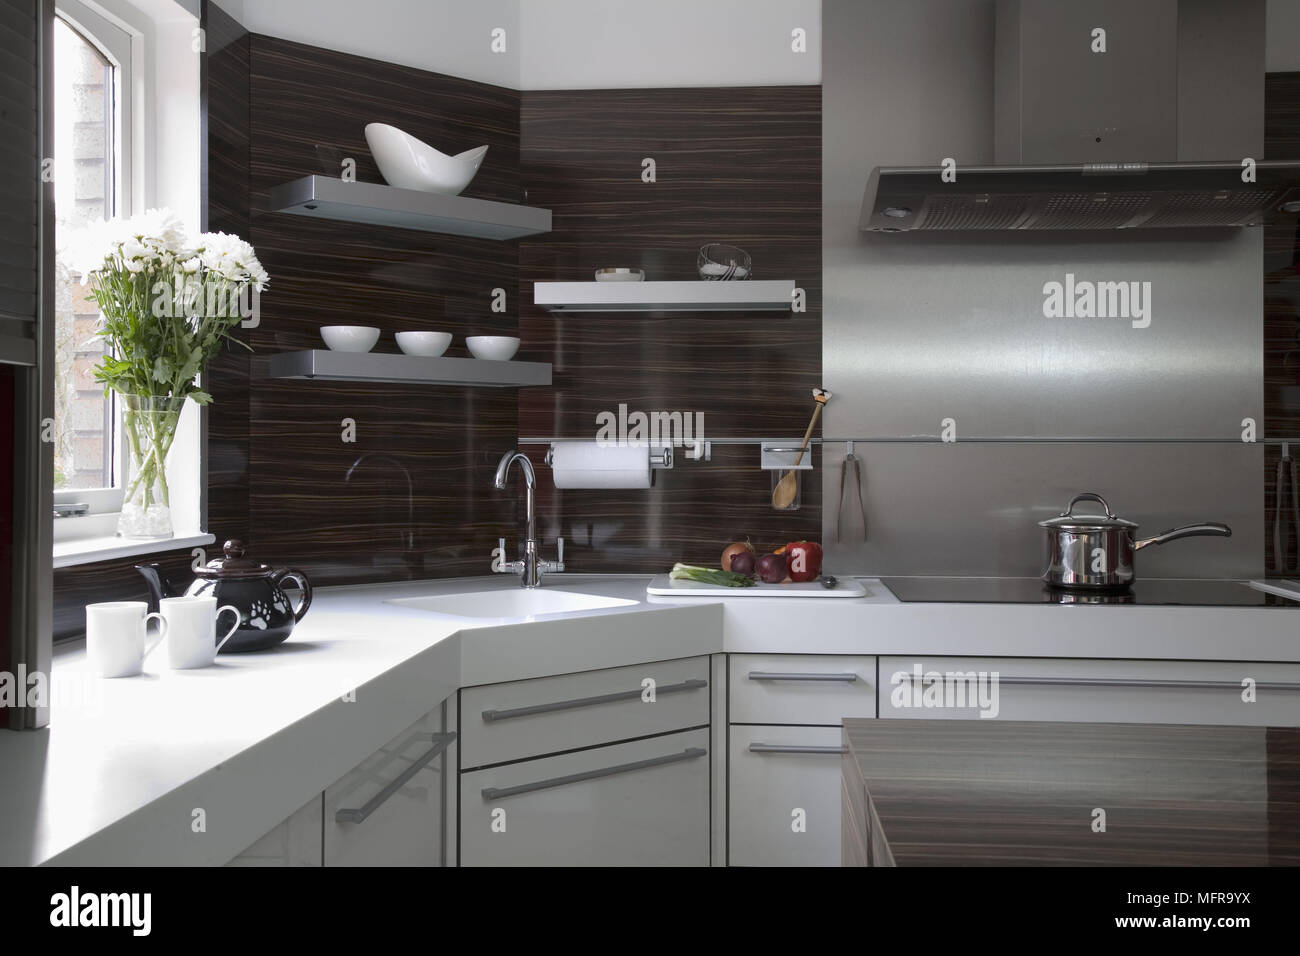 Stainless Steel Splashback Modern Kitchen With White Fitting Units And Stainless Steel